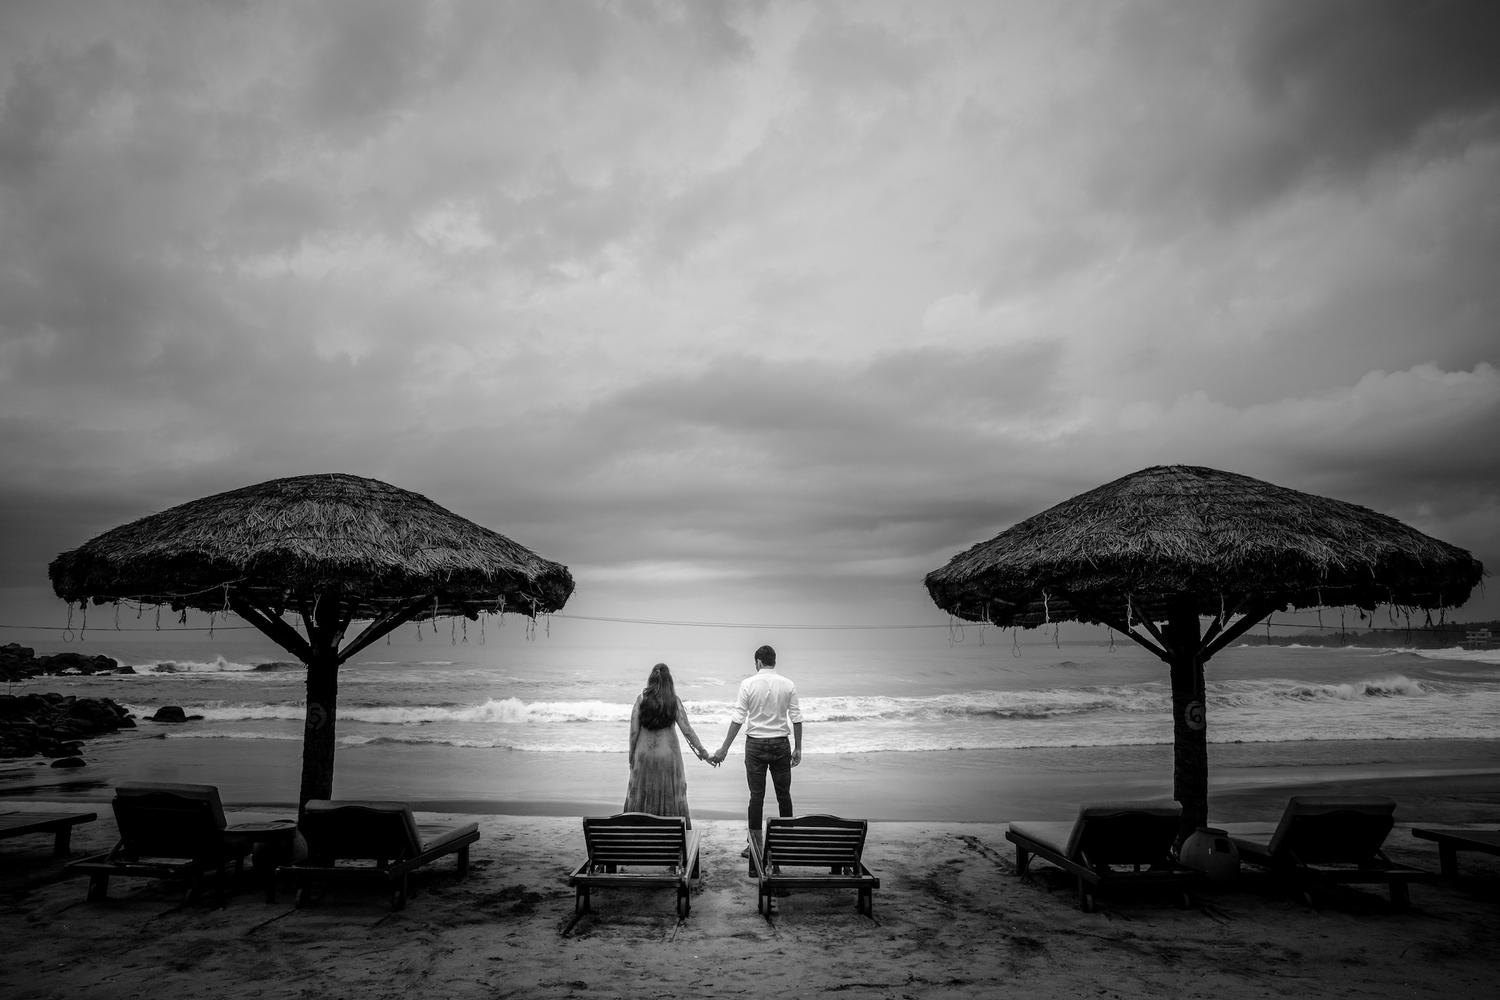 Prewedding Kerala Kovalam Backwaters gujarati beach destination wedding